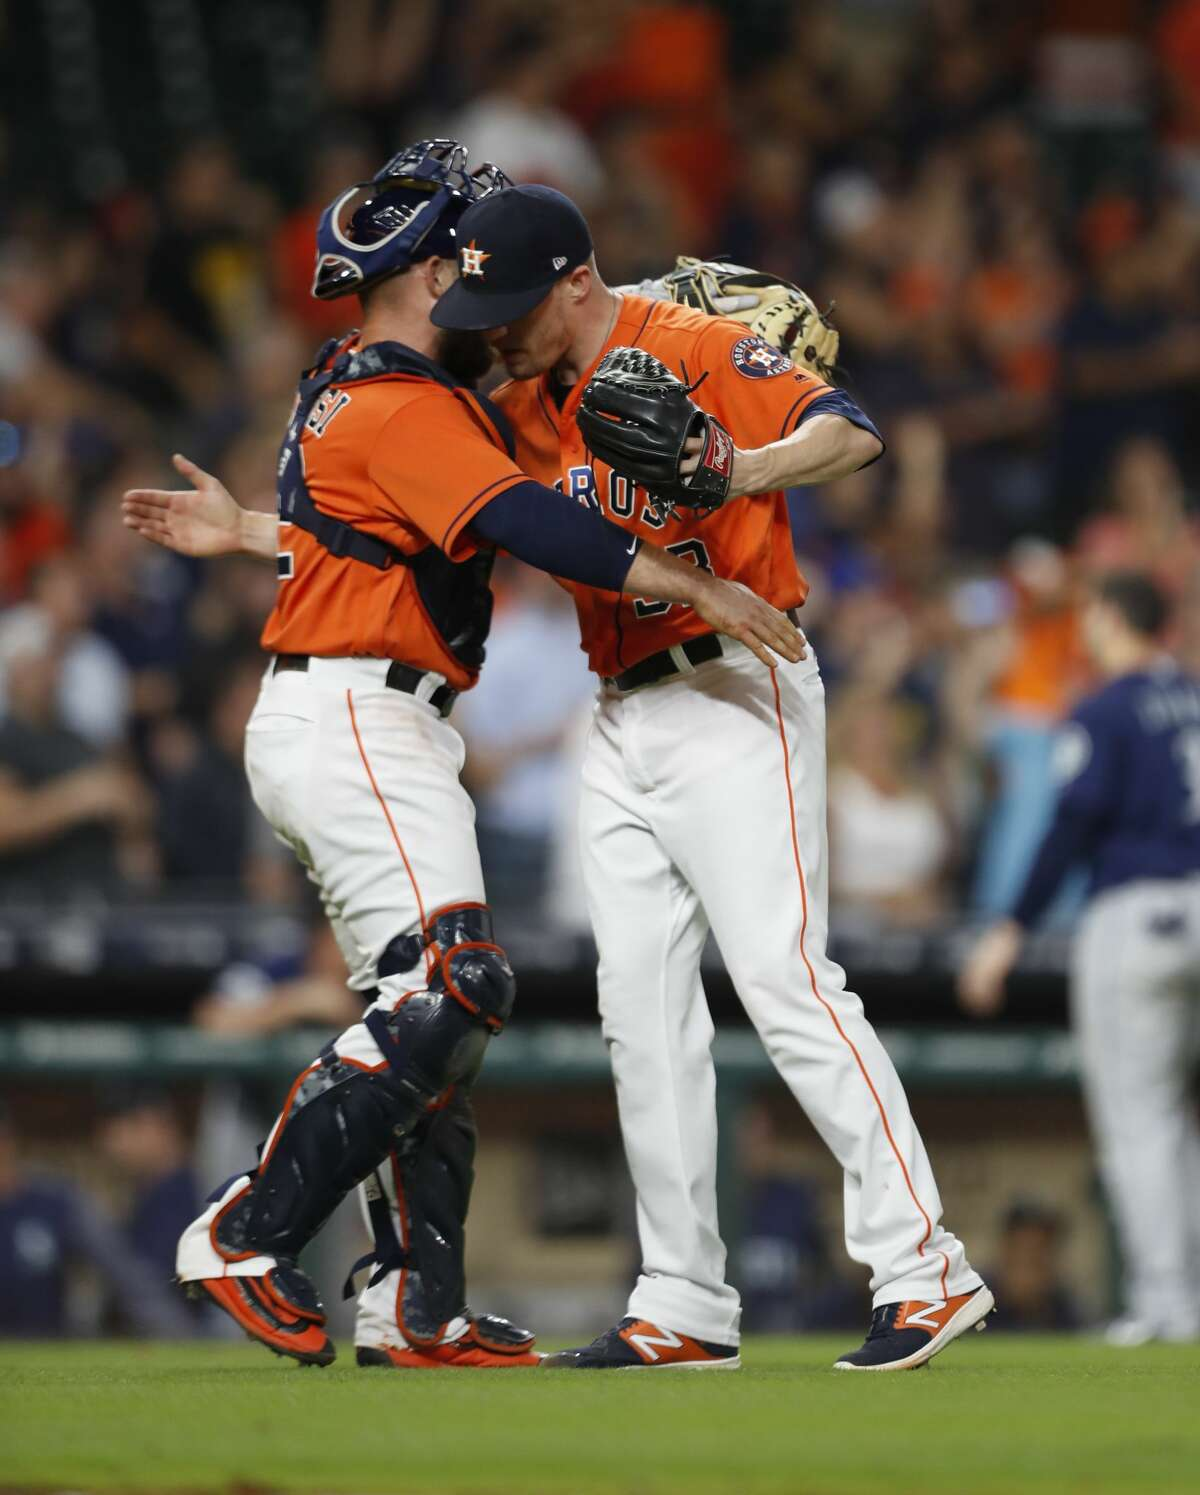 Houston Astros relief pitcher Ken Giles (53) hugs catcher Max Stassi (12) after the Astros win 5-2 against the Seattle Mariners after an MLB baseball game at Minute Maid Park, Friday, Sept. 15, 2017, in Houston. ( Karen Warren / Houston Chronicle )